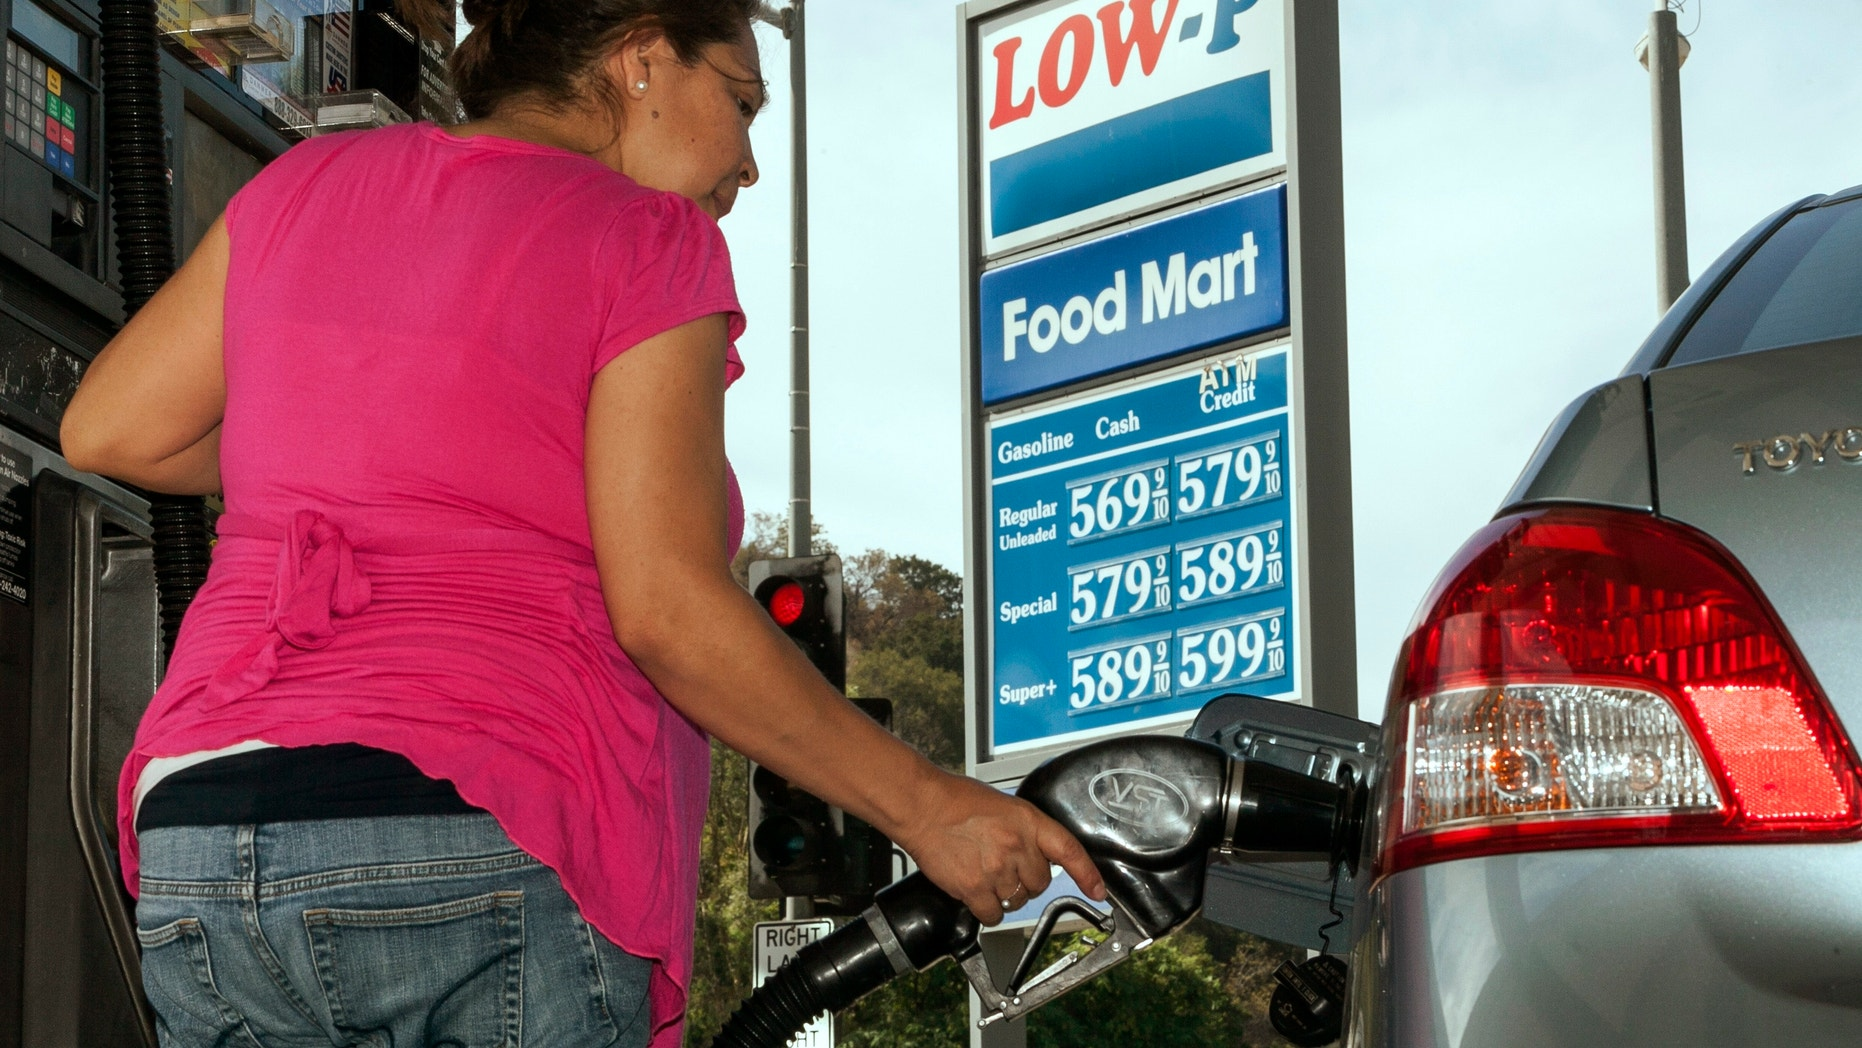 Oct. 5, 2012: Motorist Elisabeth Chavarria fills up only six dollars worth of gas to be able to drive home Friday, Oct. 5, 2012, at the Low-P, an independent gas station in Calabasas, Calif.